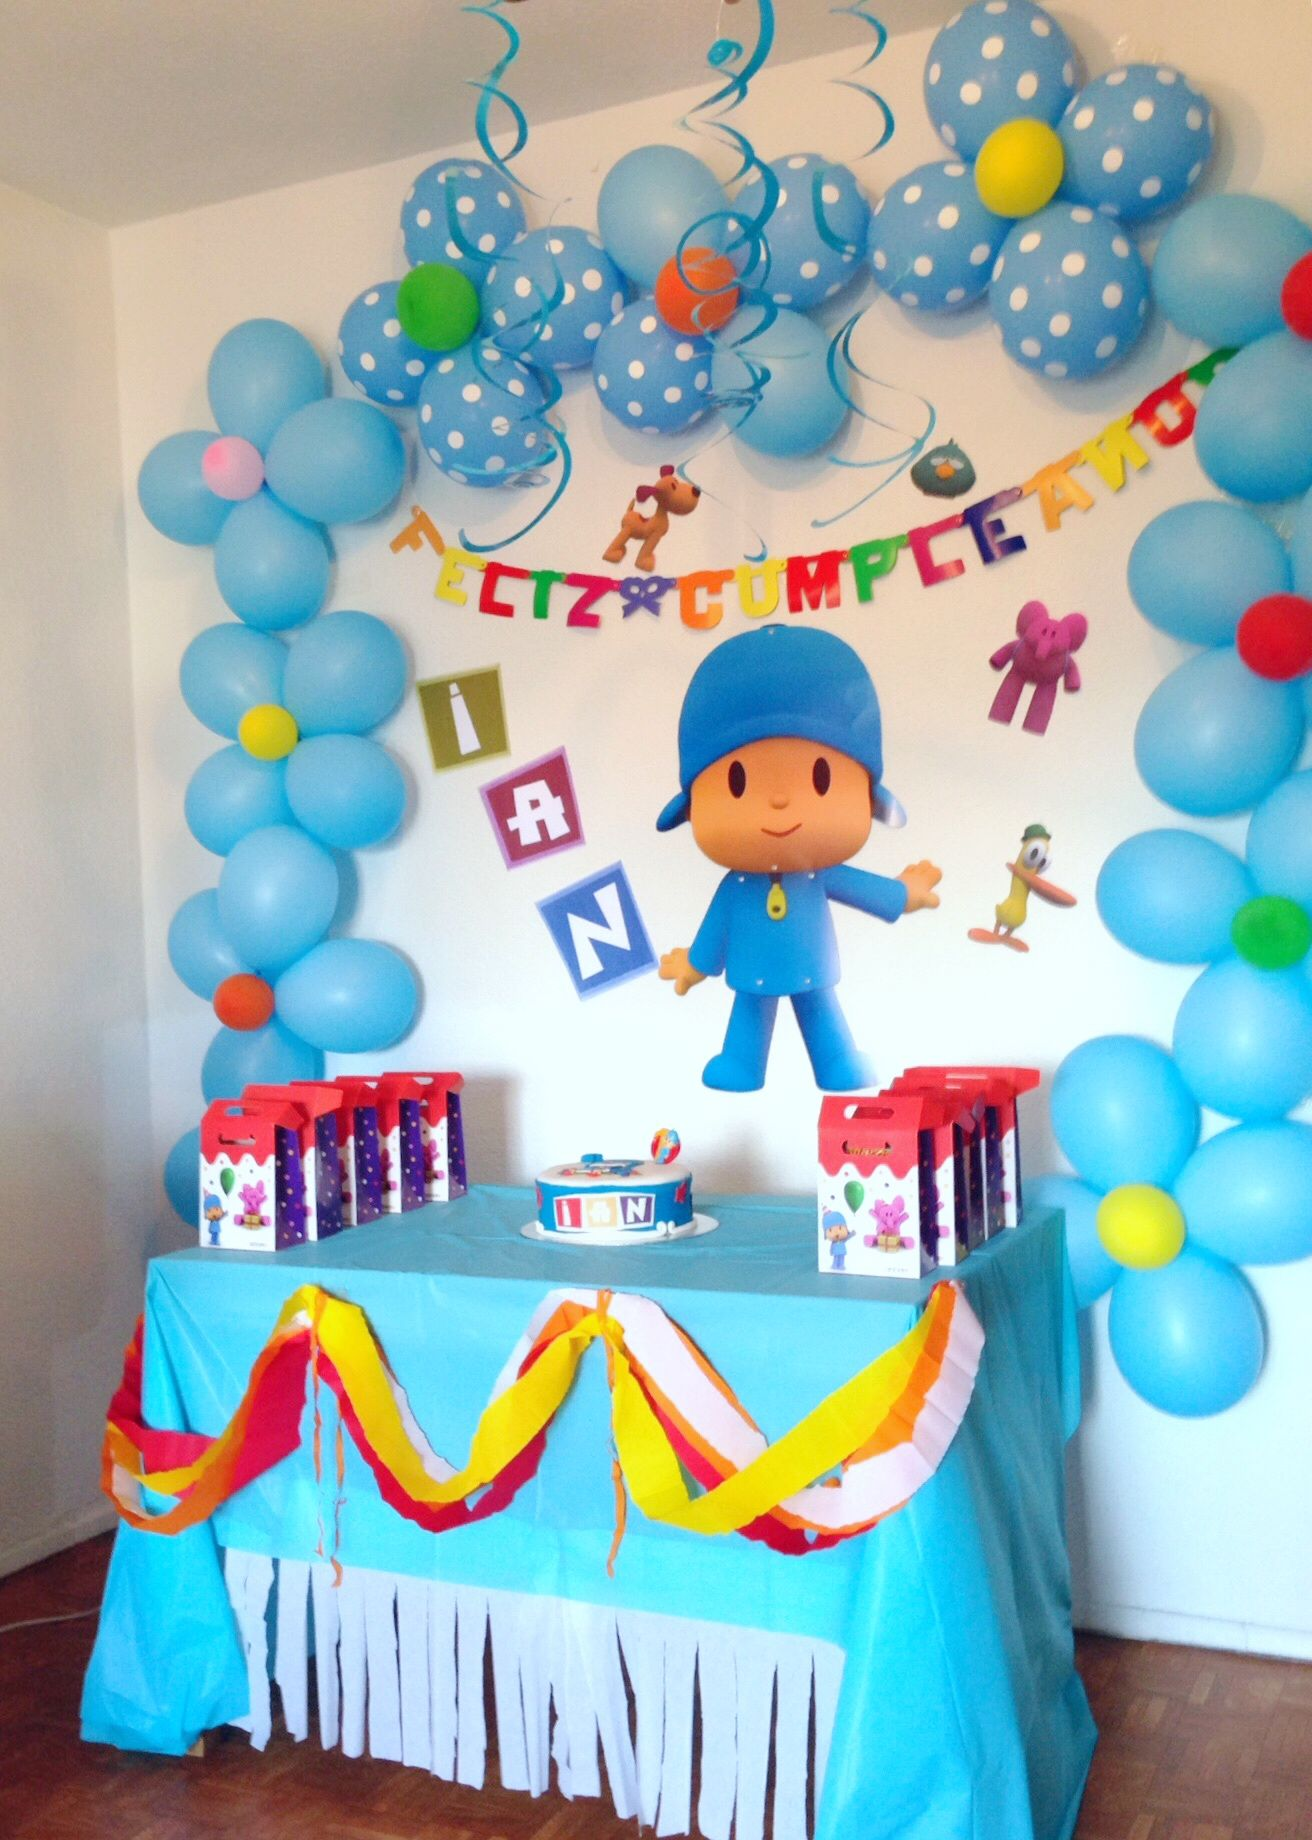 pocoyo decoraci n cumplea os infantil ideas birthday party